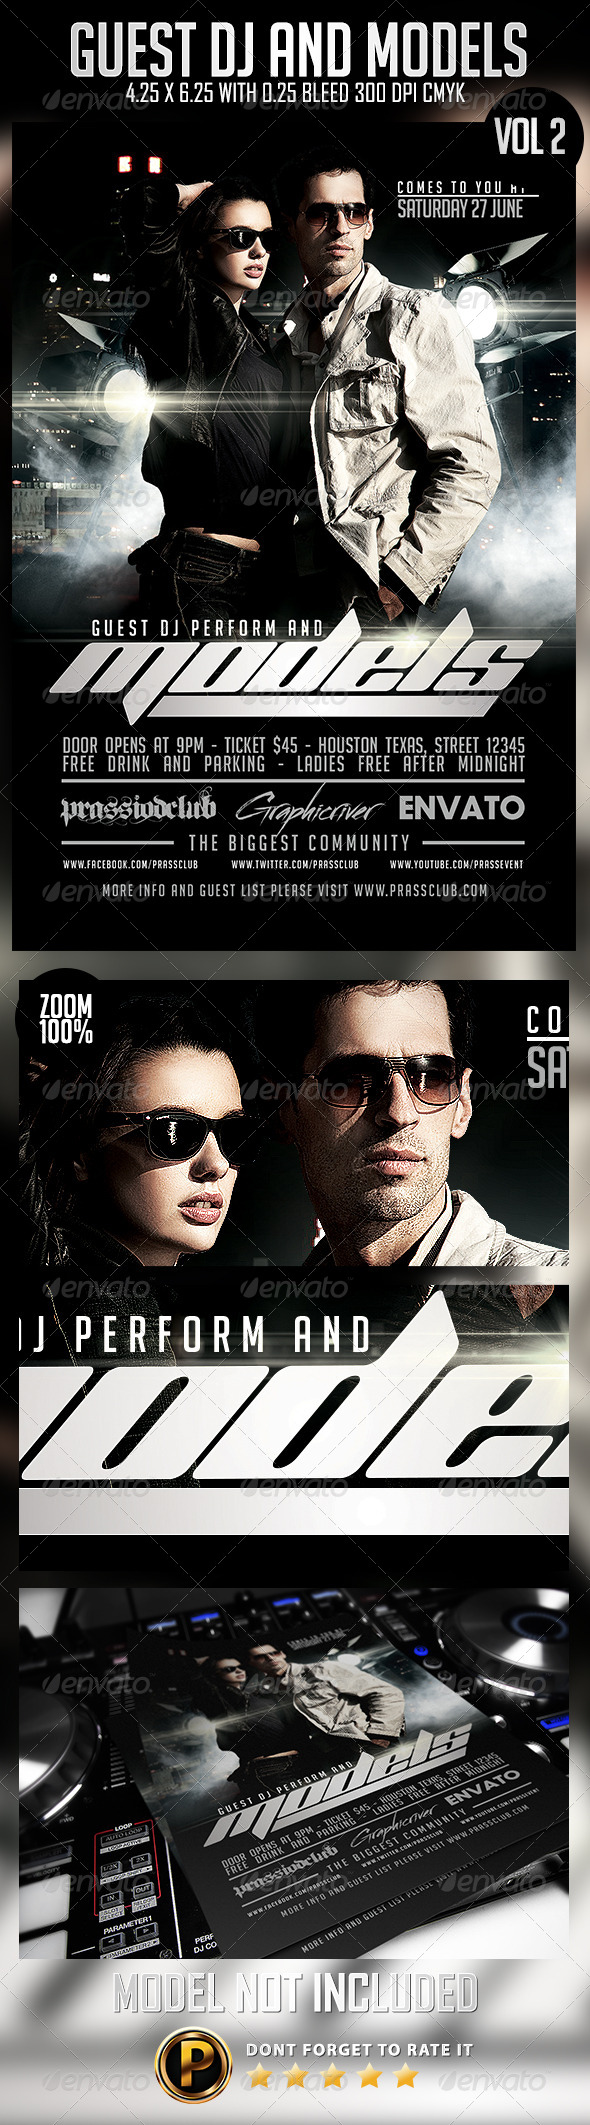 Guest DJ And Model Vol 2 Flyer Template - Clubs & Parties Events